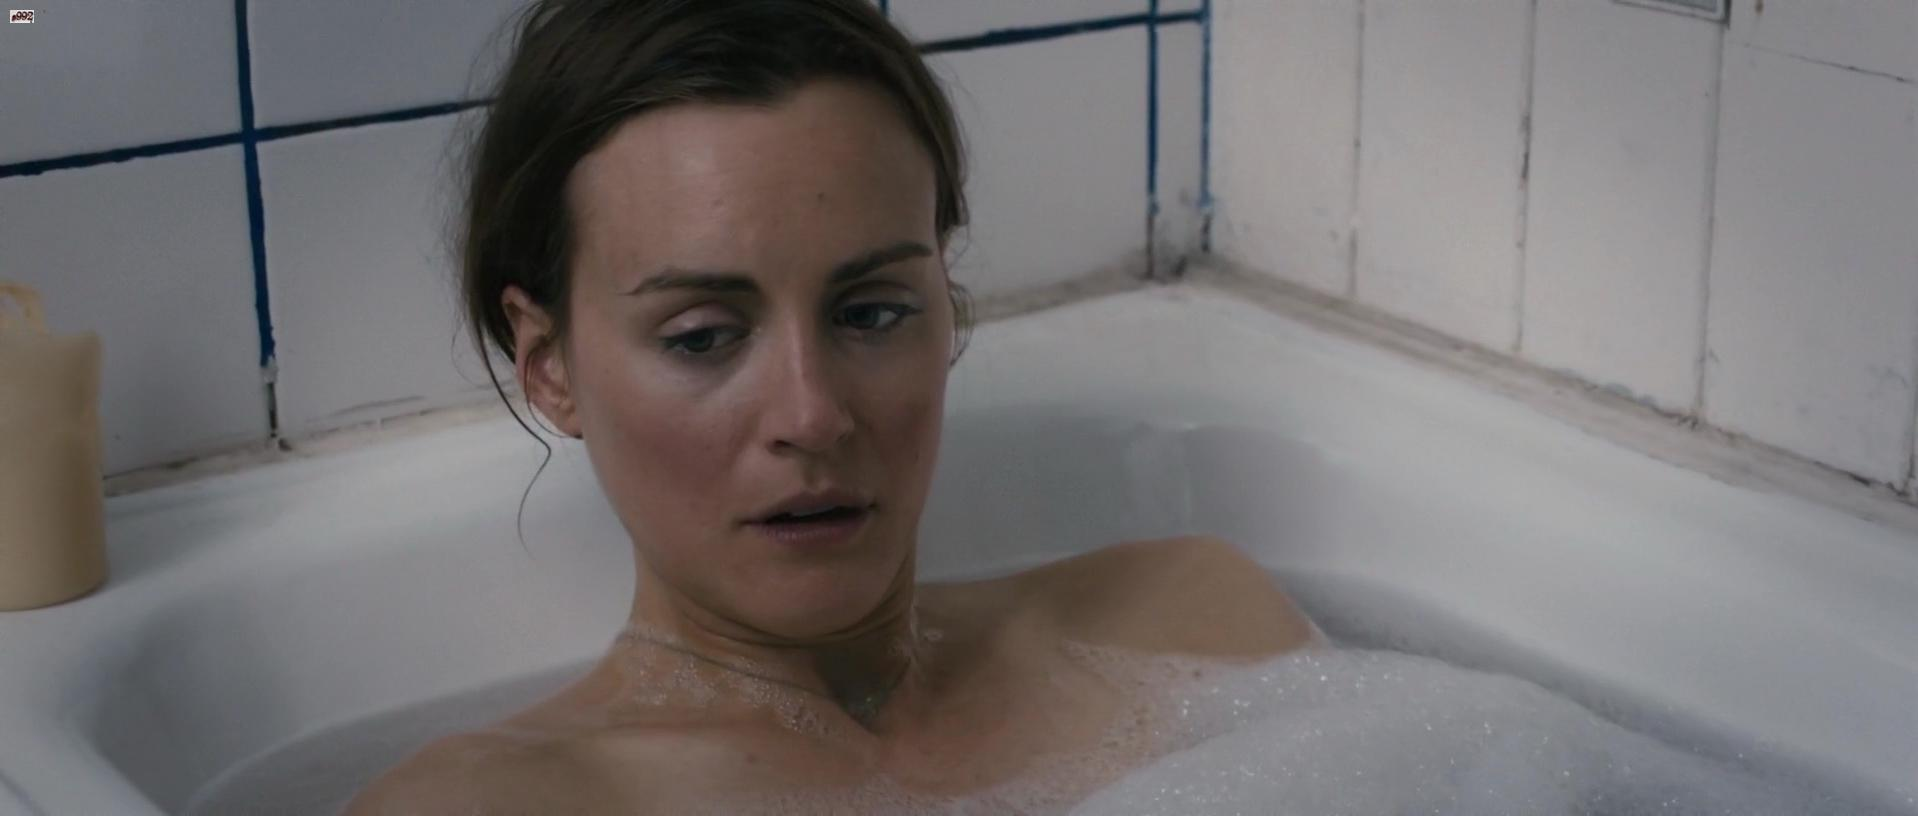 Taylor Schilling nude - Stay (2013)